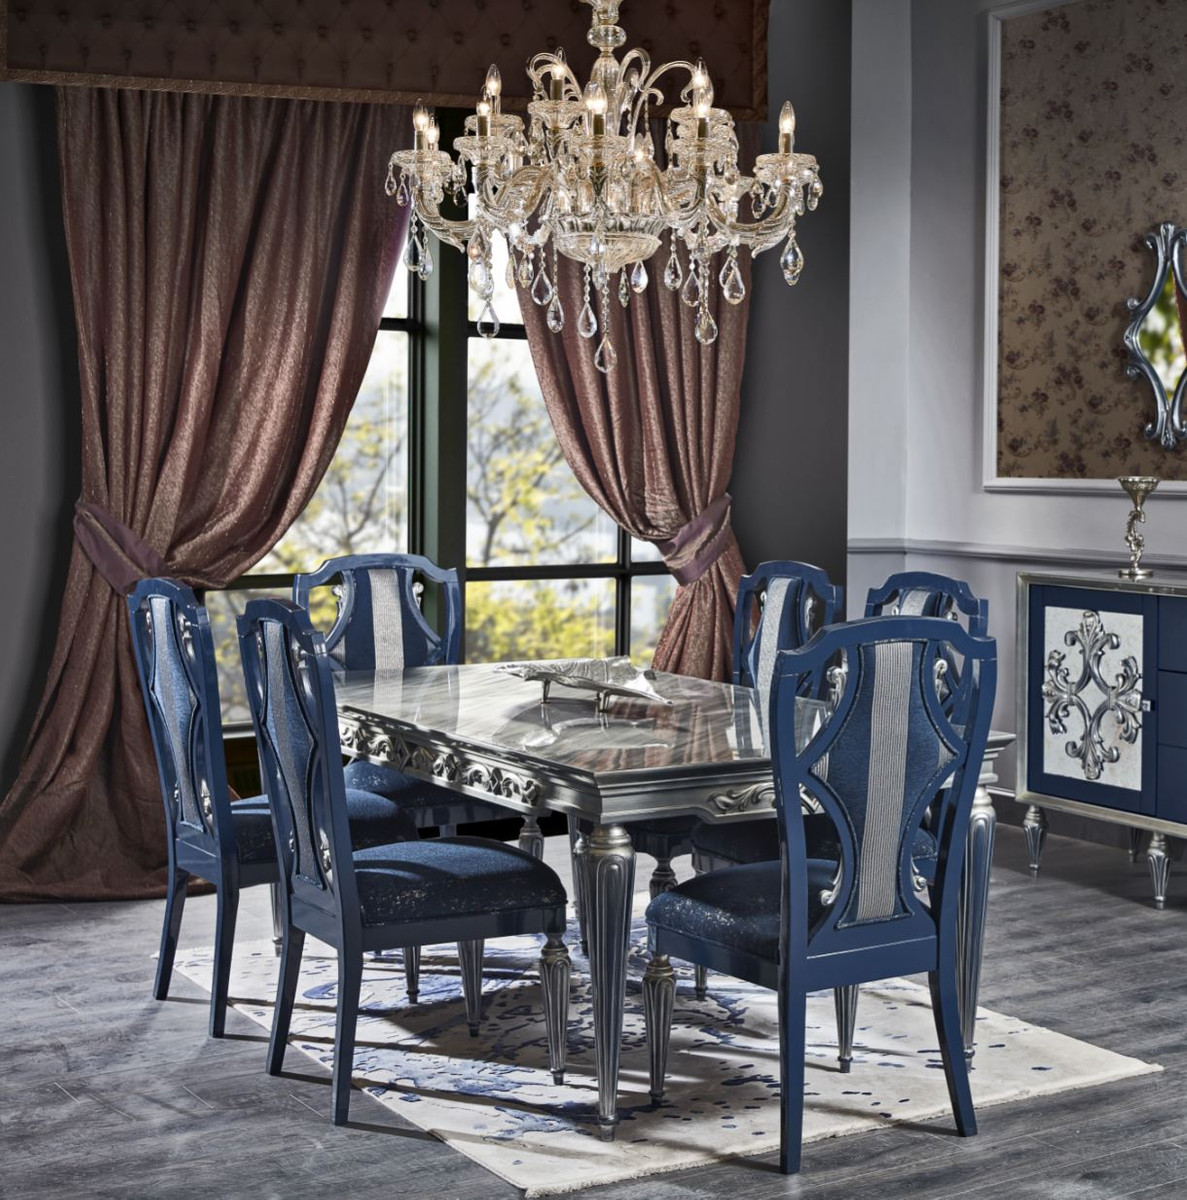 Casa Padrino Luxury Baroque Dining Room Chair Set Blue Silver 54 X 53 X H 109 Cm Noble Kitchen Chairs Set Of 6 Baroque Dining Room Furniture